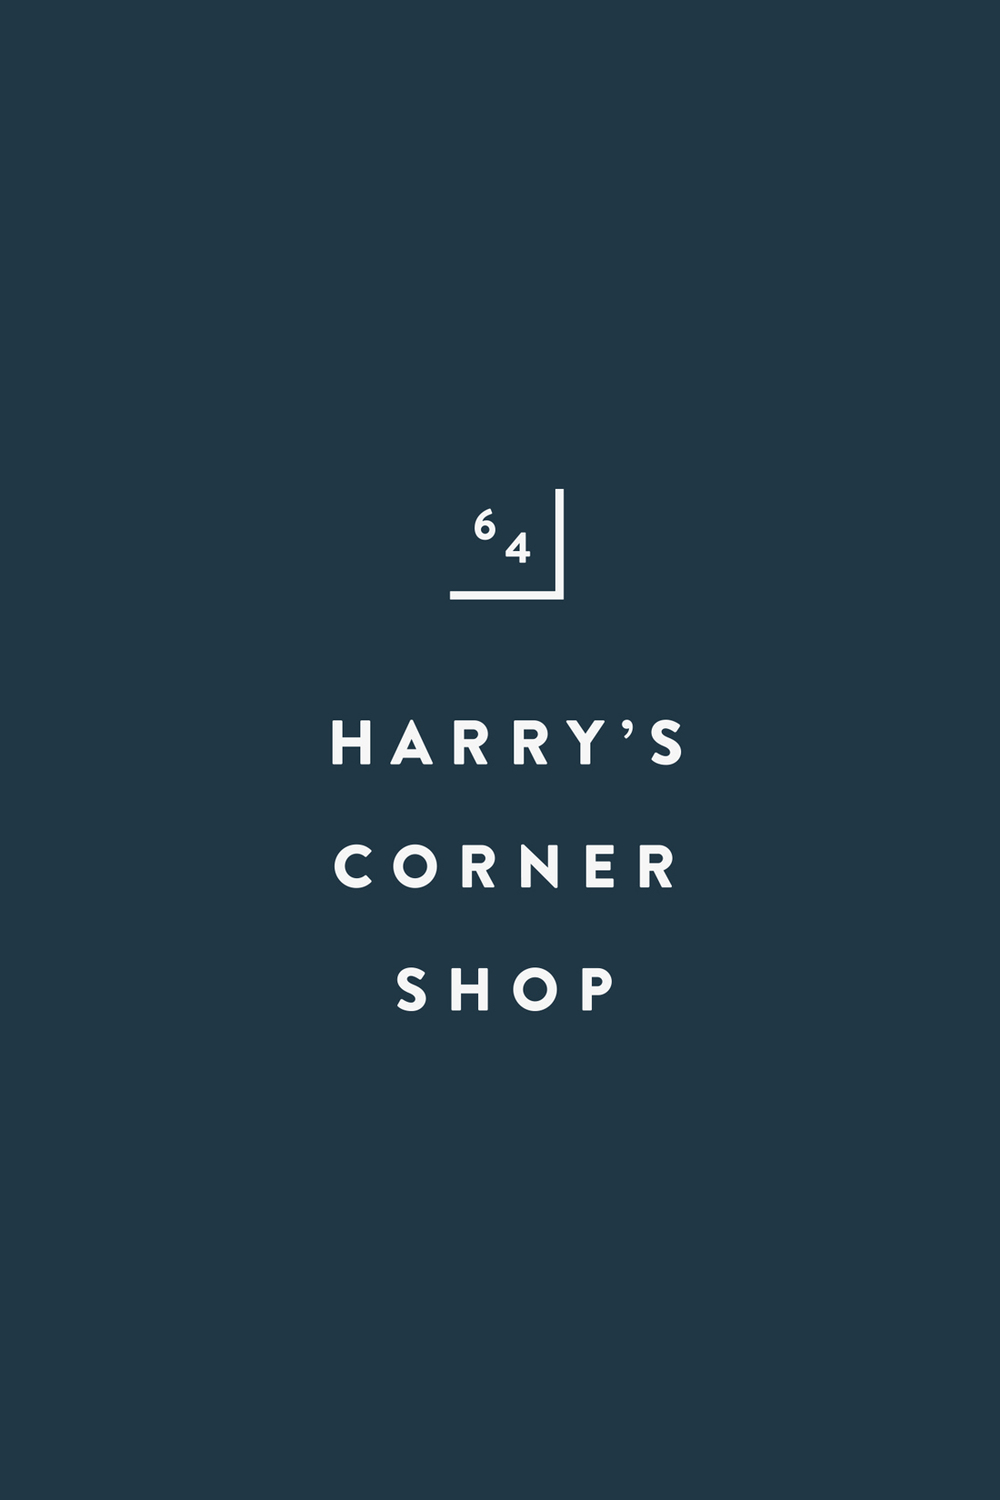 Harry's Corner Shop